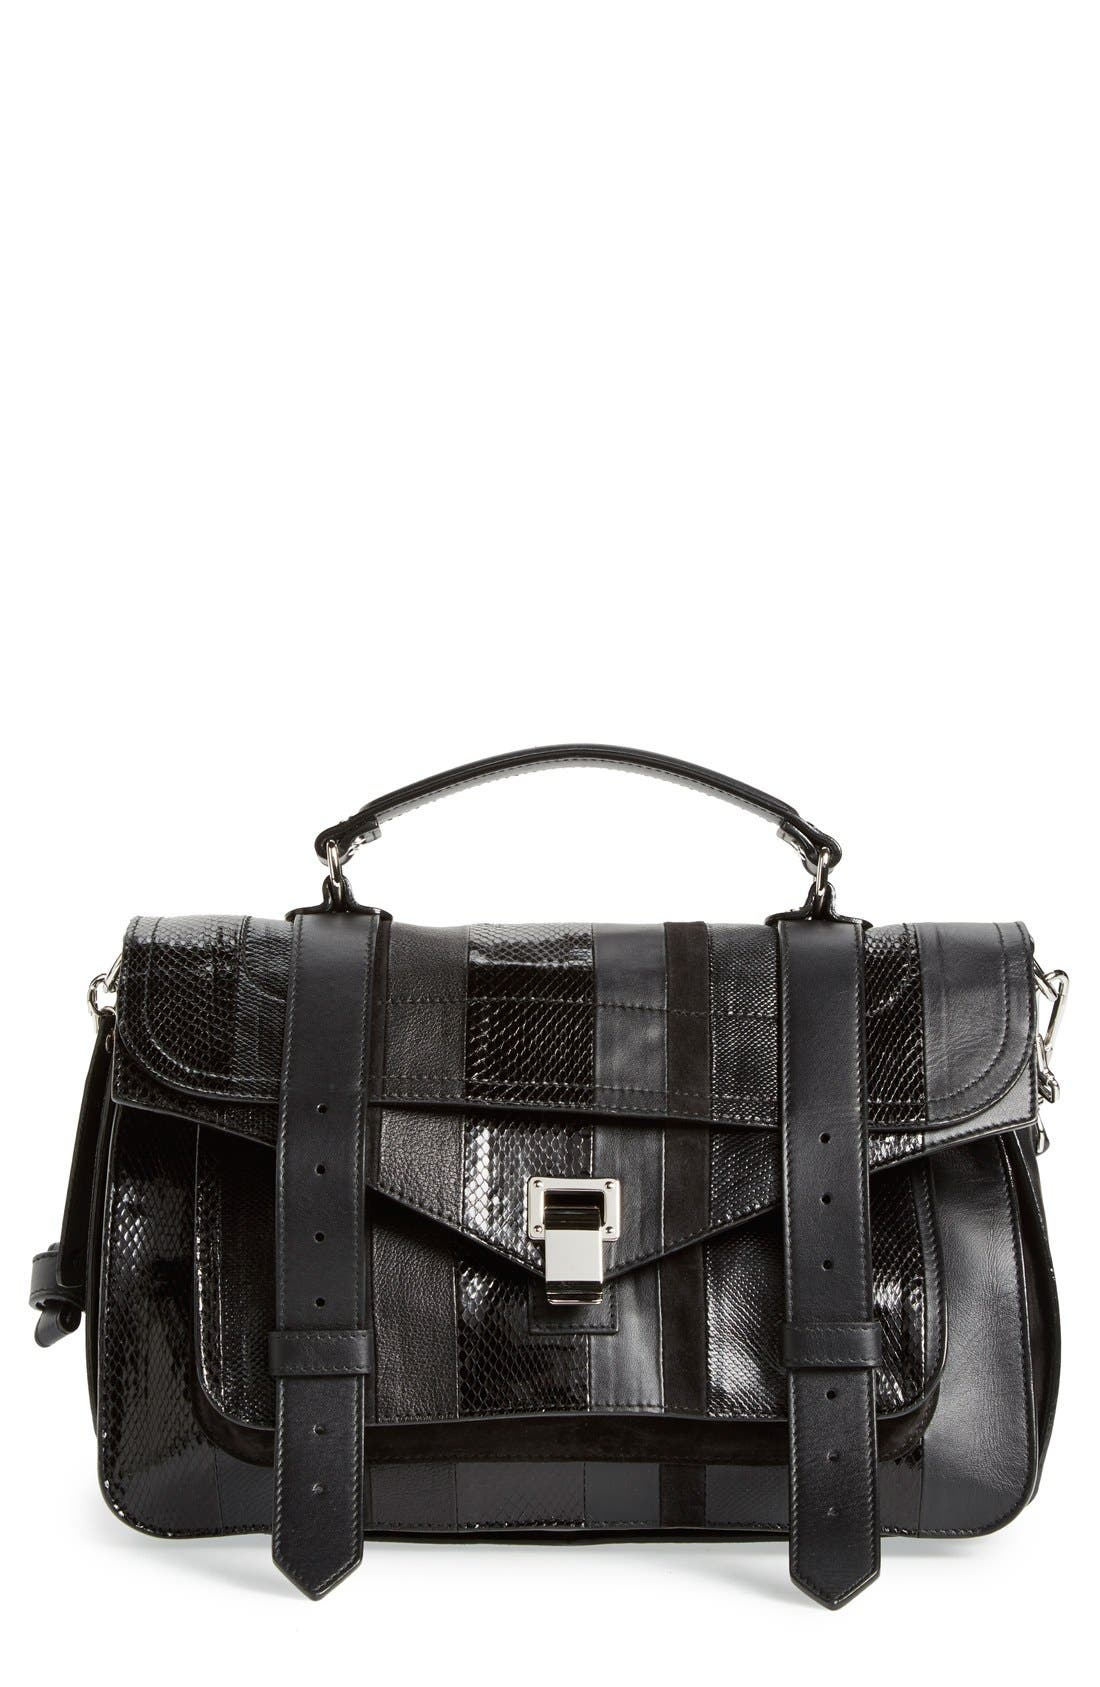 Alternate Image 1 Selected - Proenza Schouler 'Medium PS1 - Exotic Stripe' Genuine Snakeskin & Leather Satchel